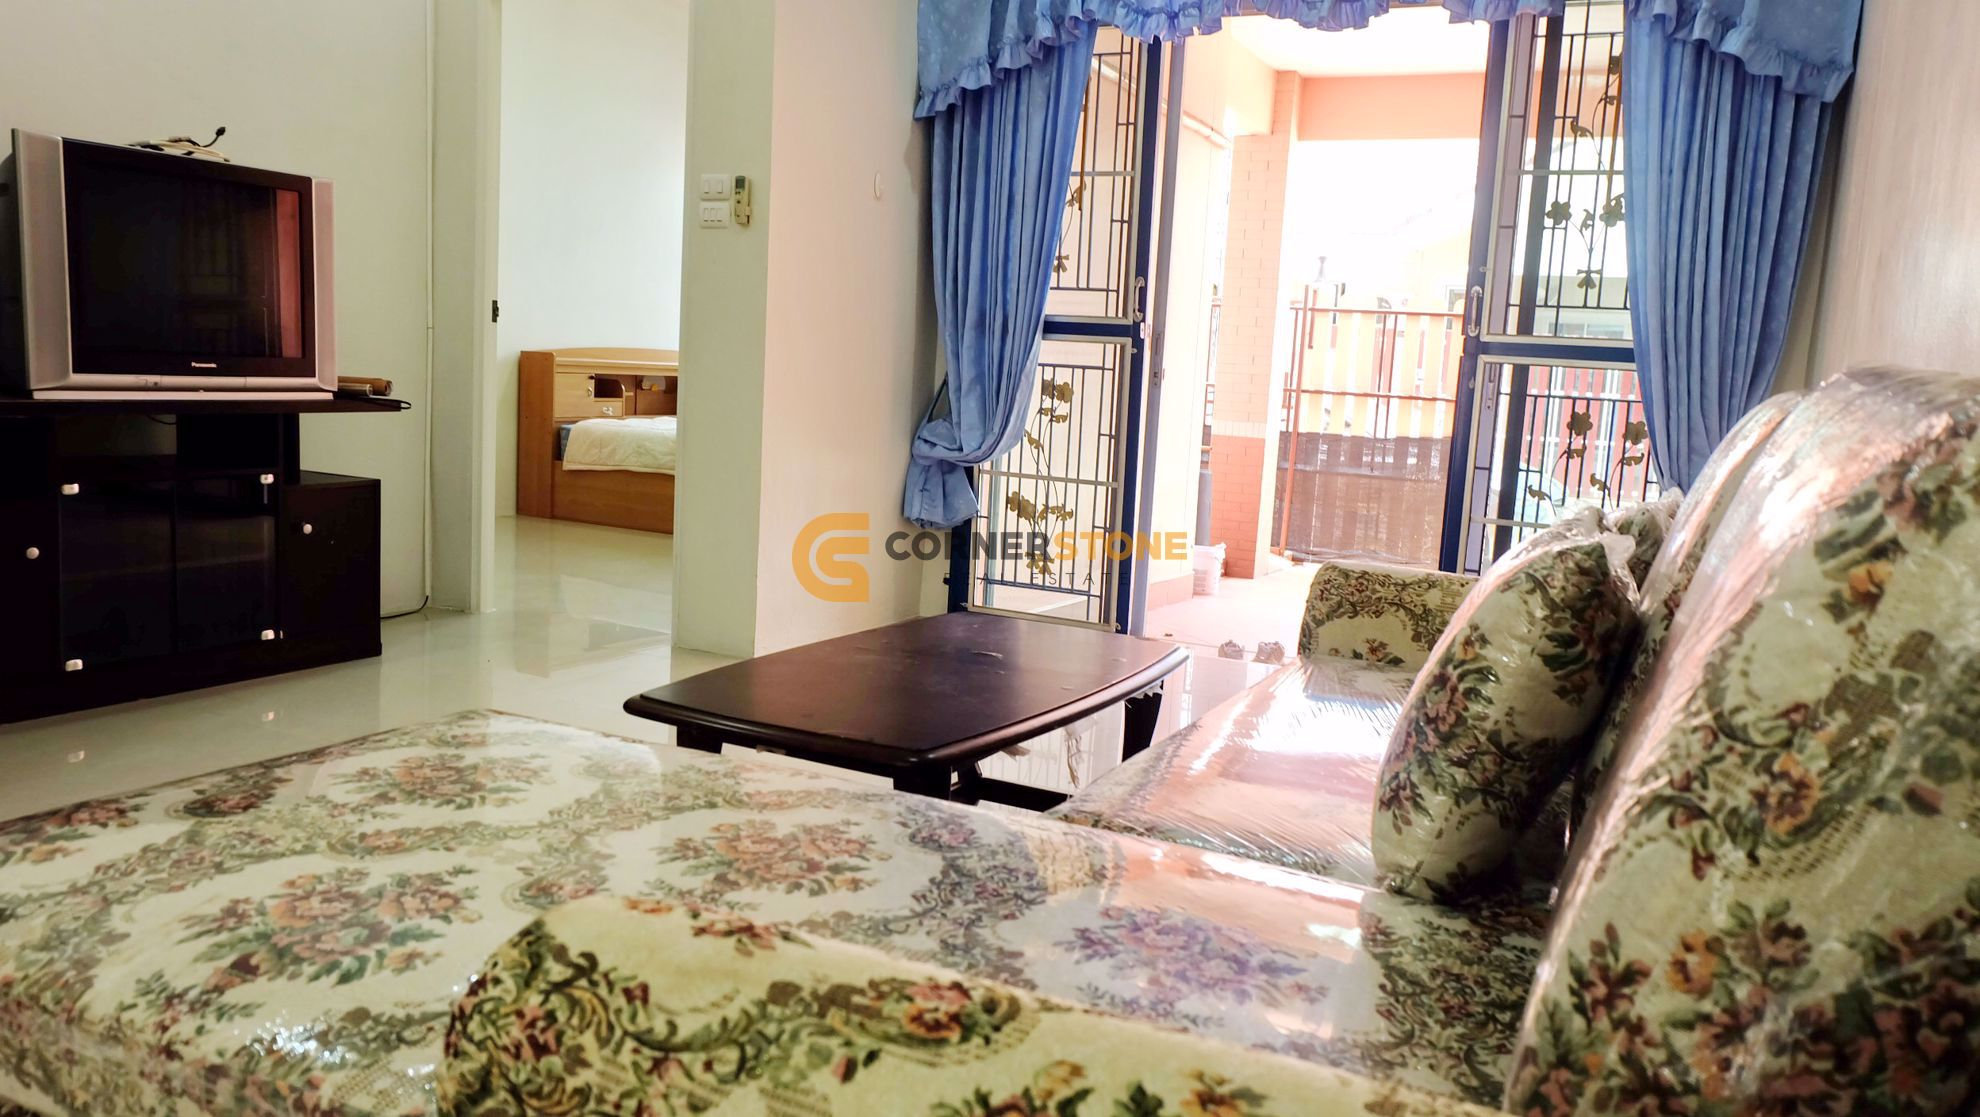 2 bed House in Chockchai Garden Home 7 in East Pattaya H002452